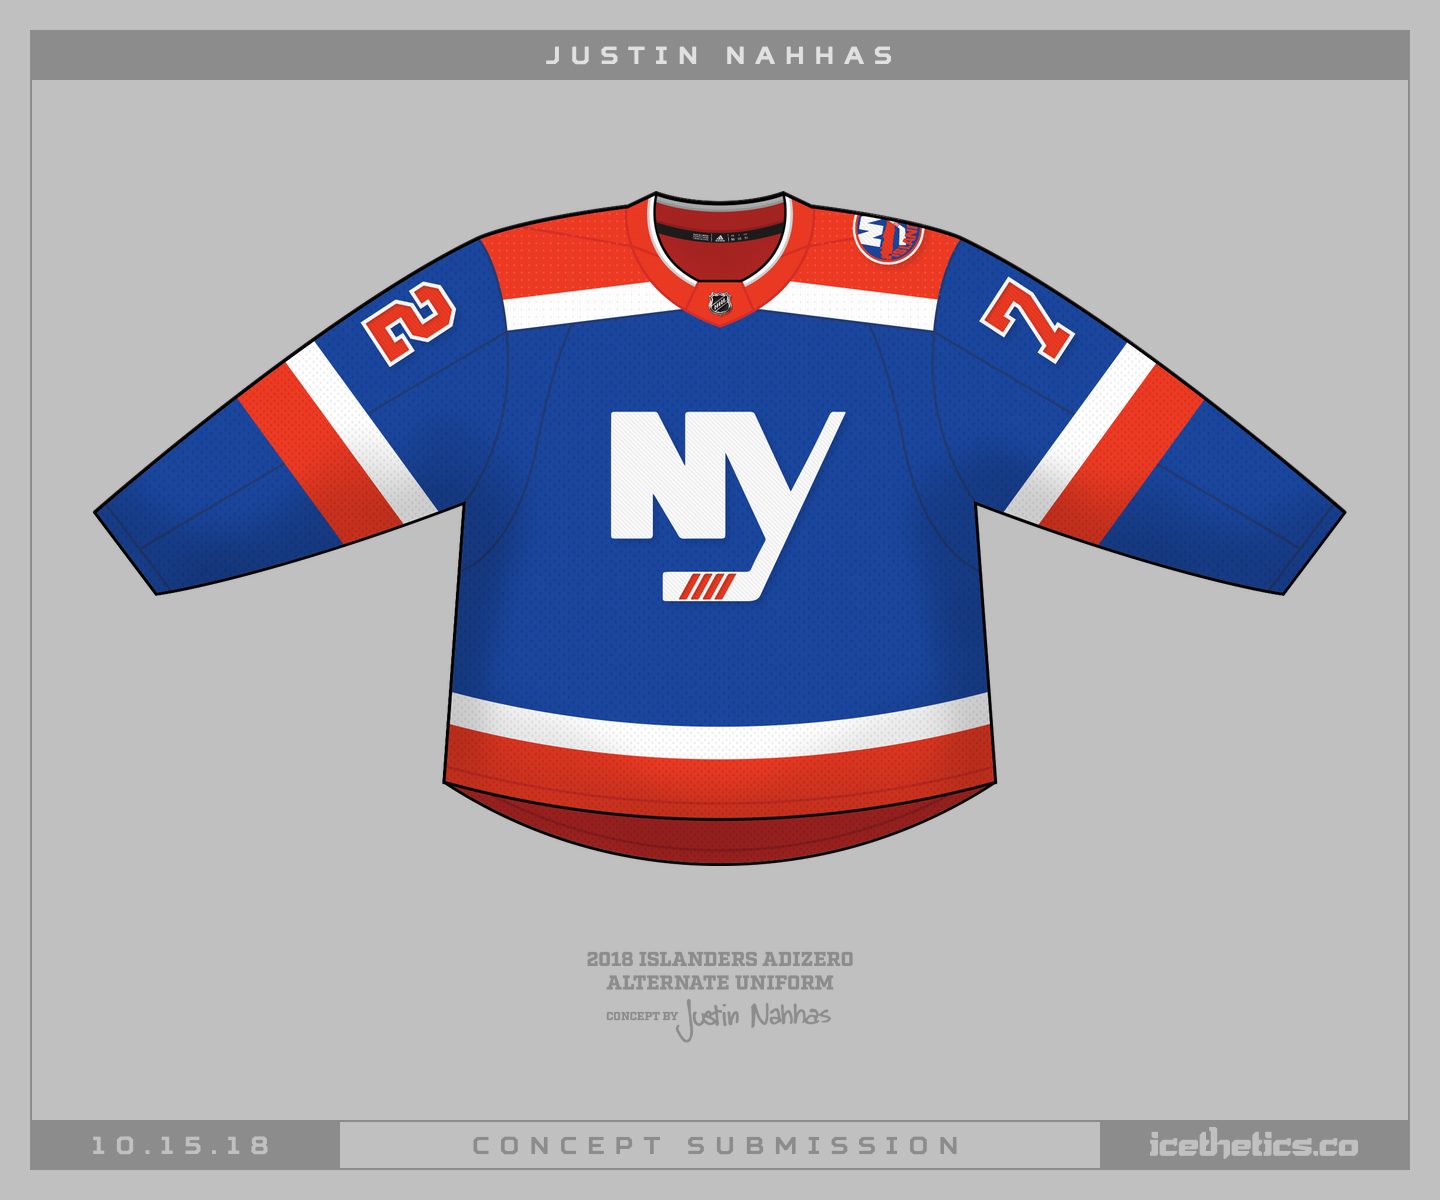 official photos a48bb 72a8f new york islanders — Concepts — icethetics.co